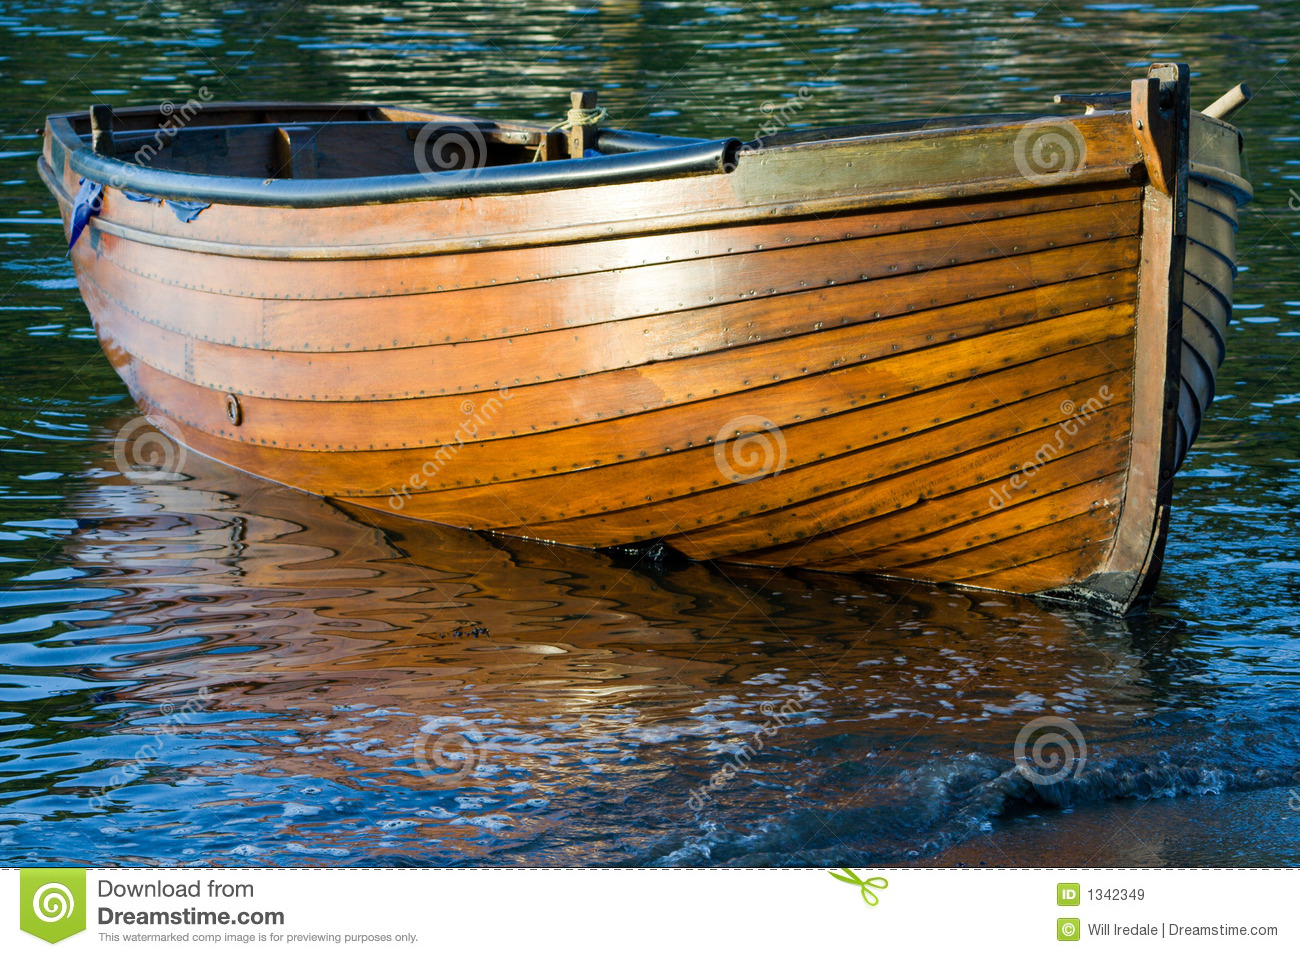 ... . Download Free Pictures, Images and Photos Wooden Row Boat Plans